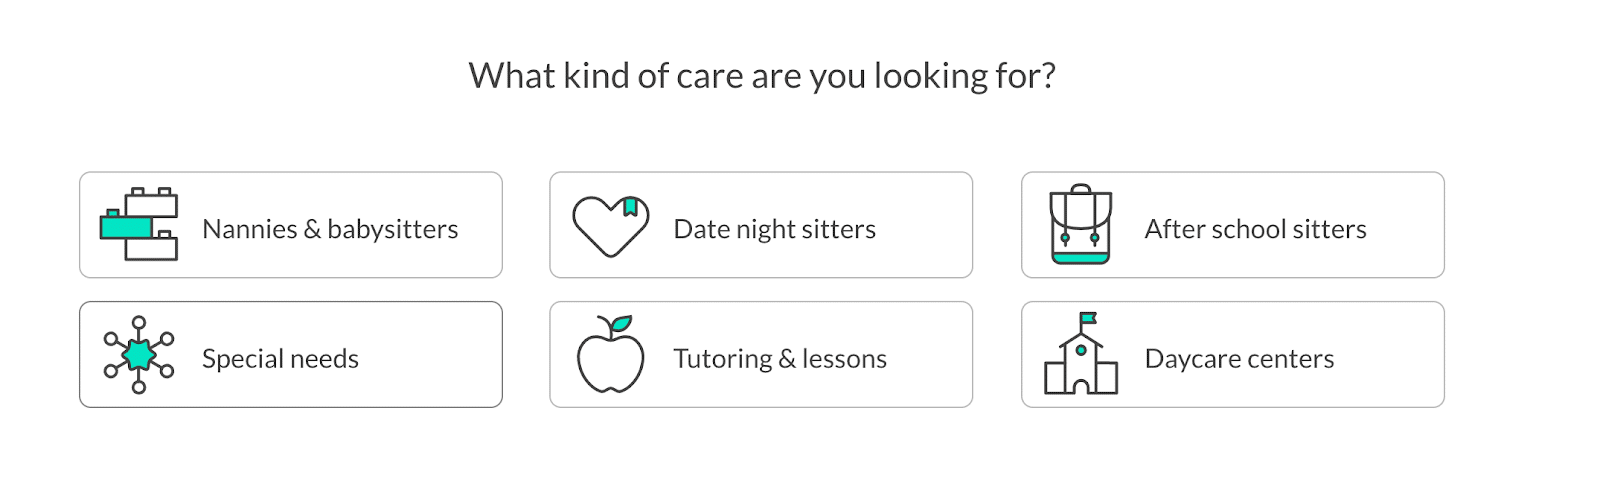 Everything You Need to Know About the Care.com Tutor Service: Select type of care